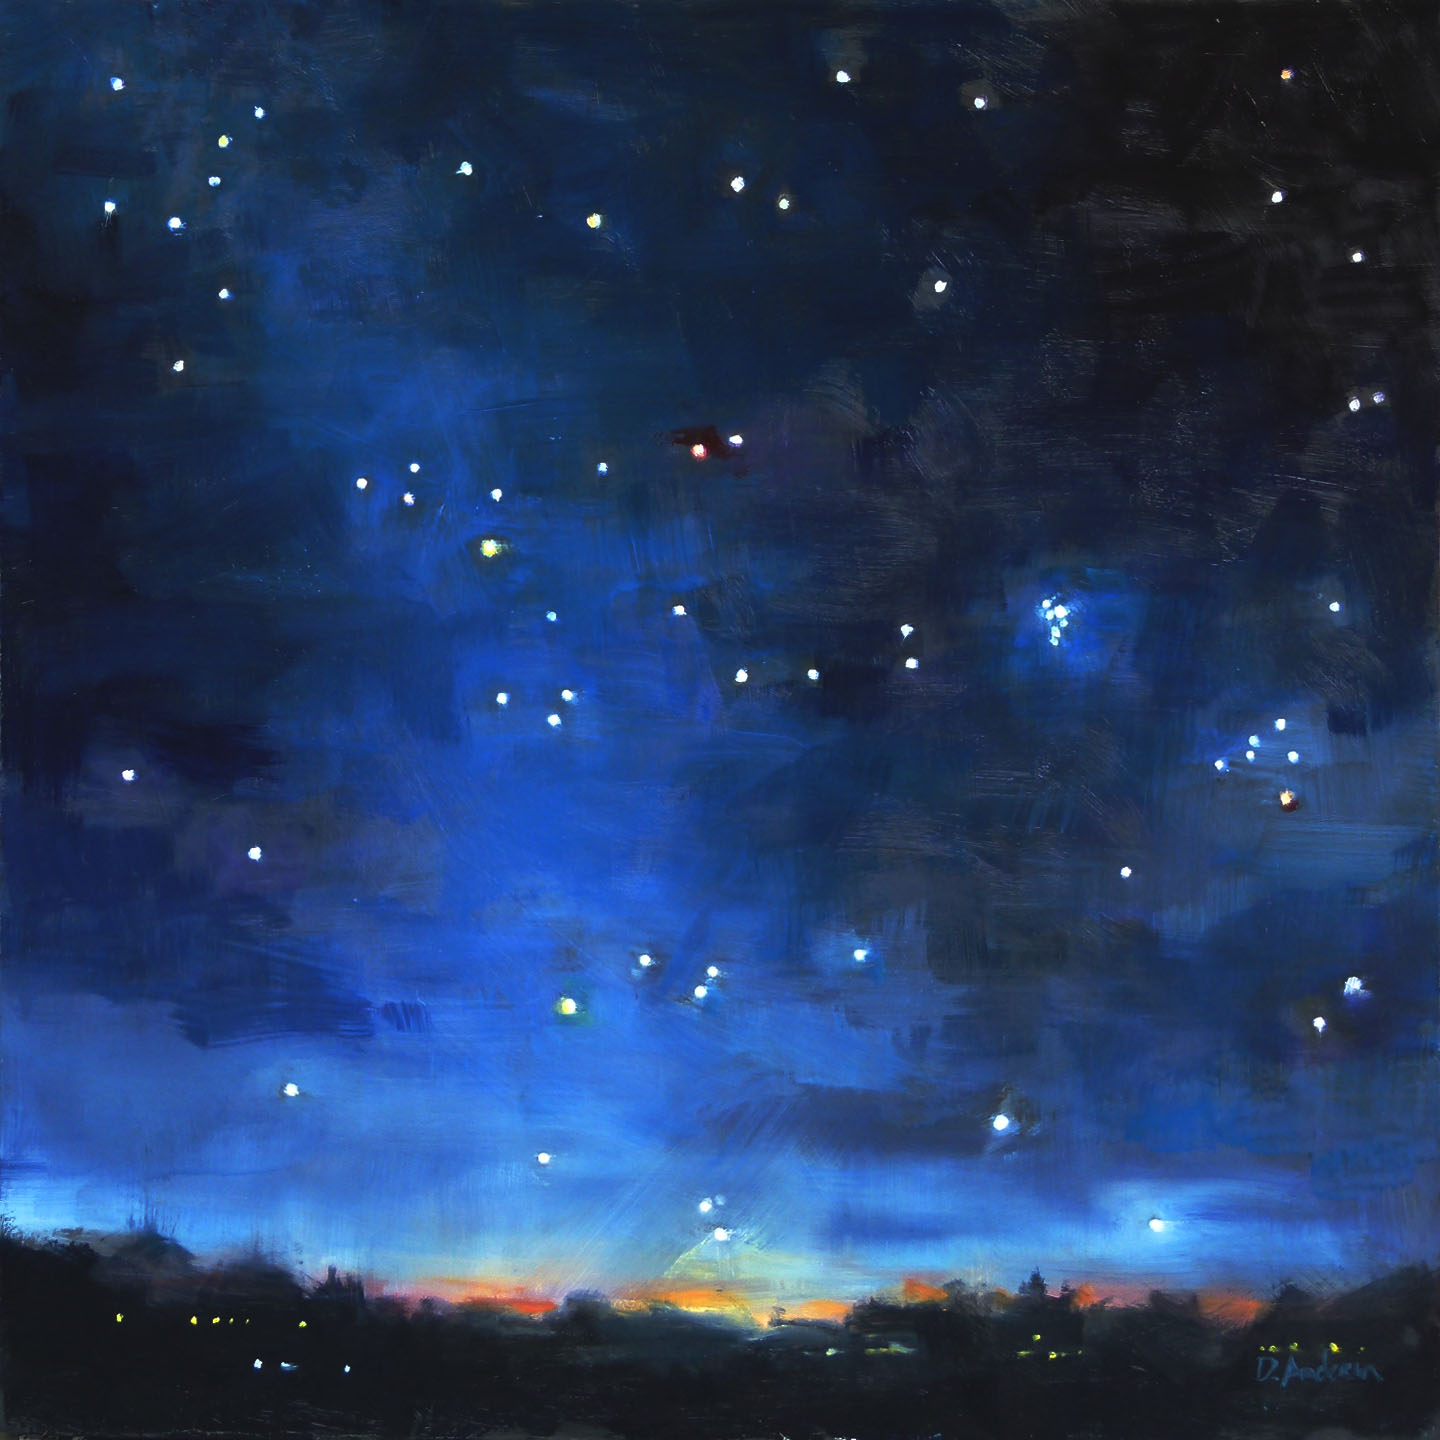 The Night Sky - The Seven Sisters